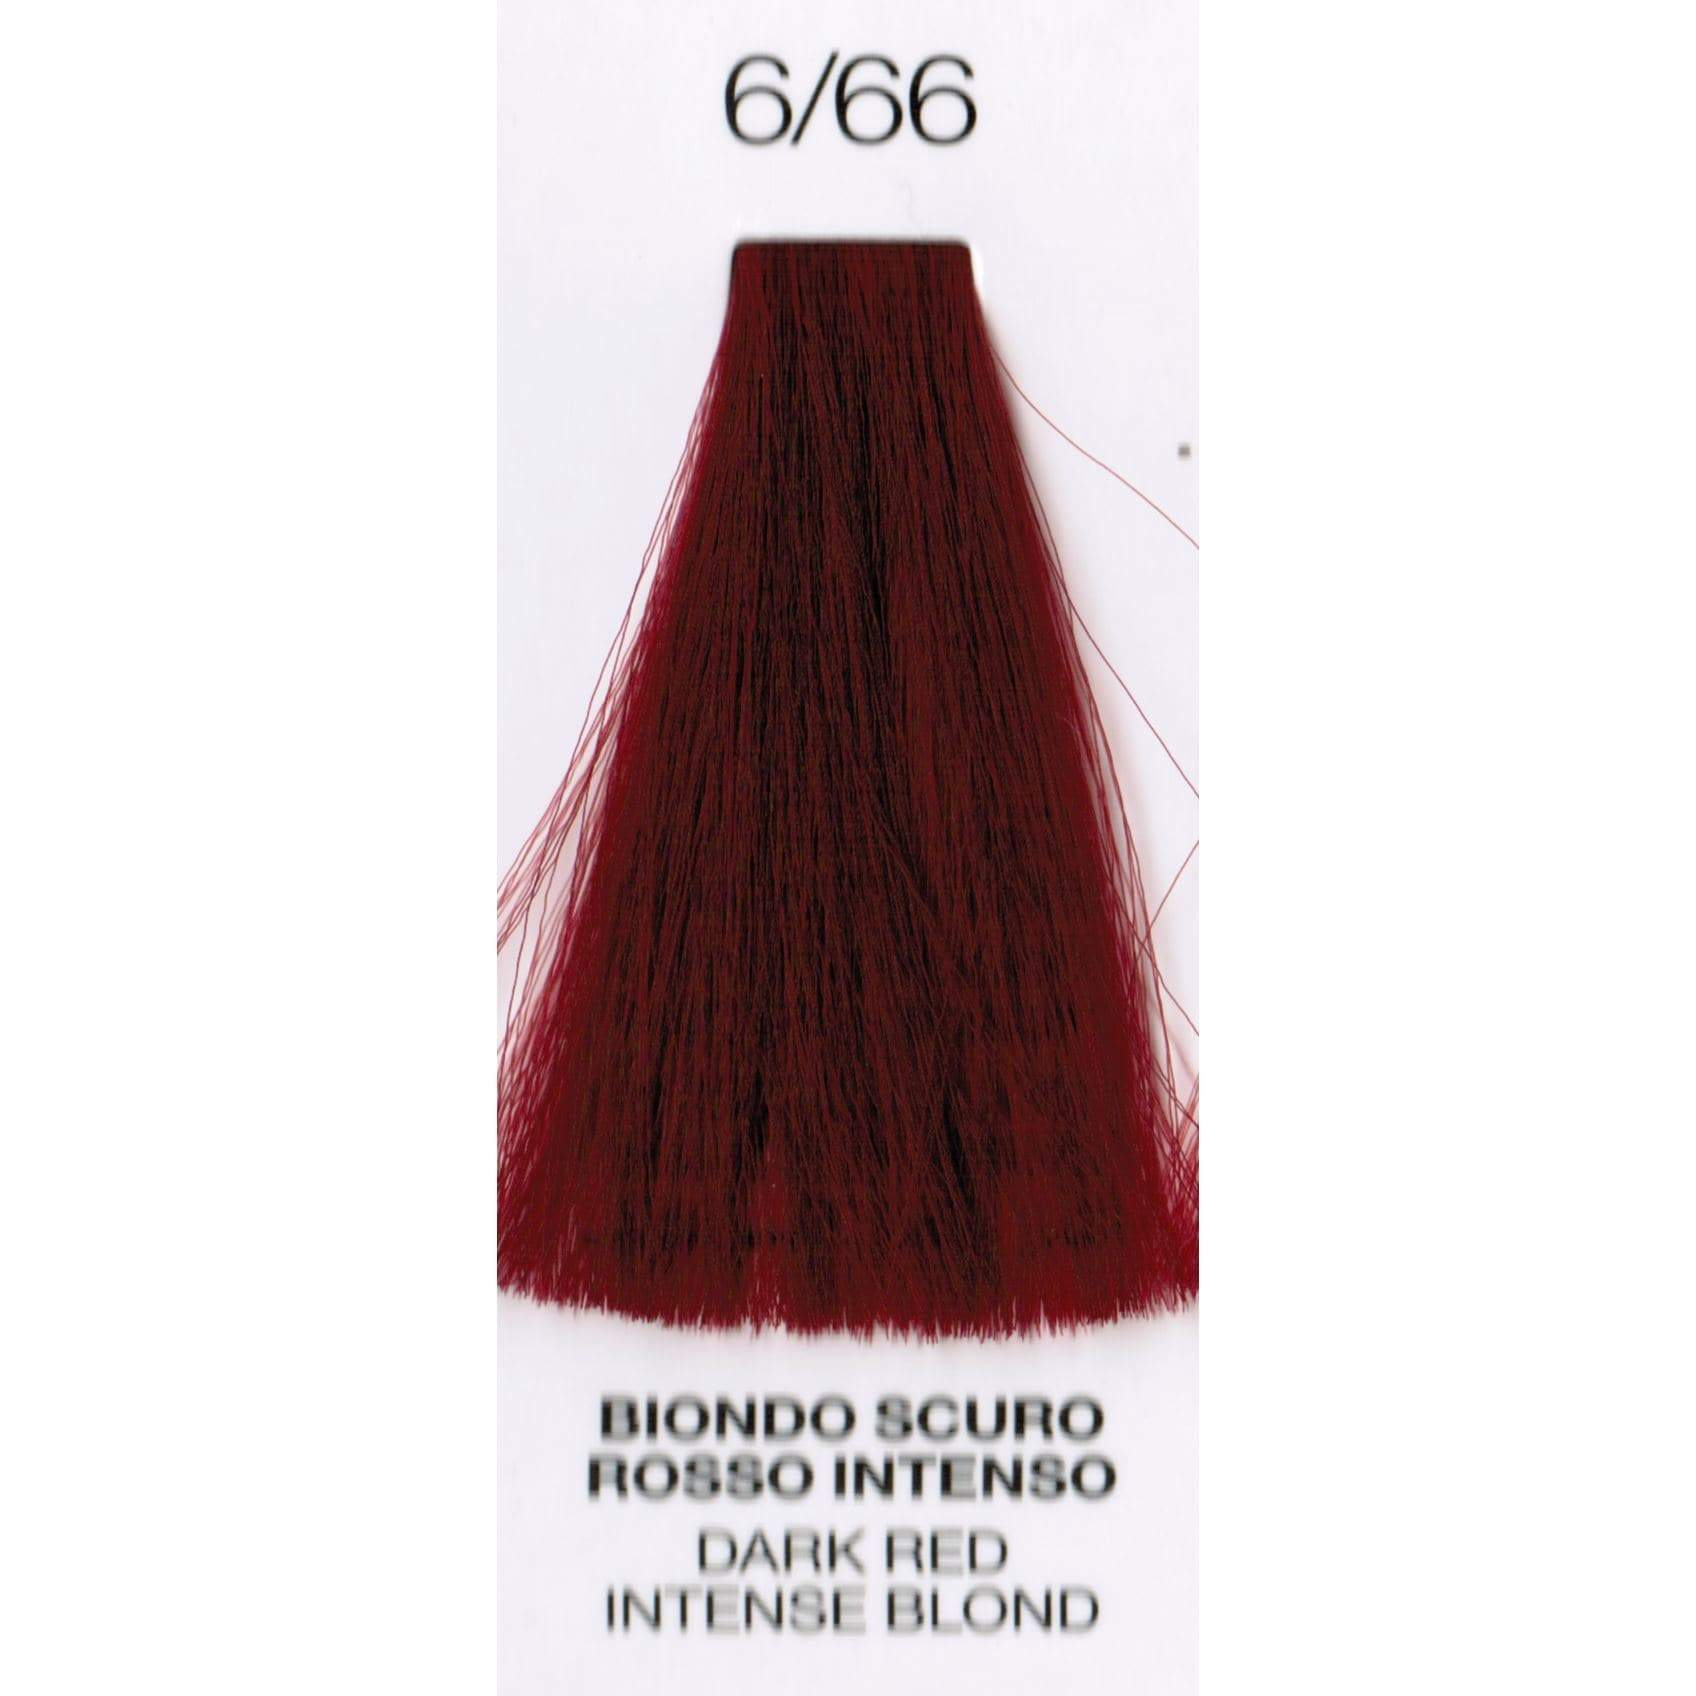 6/66 Dark Red Blonde Intense | Purity | Ammonia-Free Permanent Hair Color | OYSTER | SHSalons.com